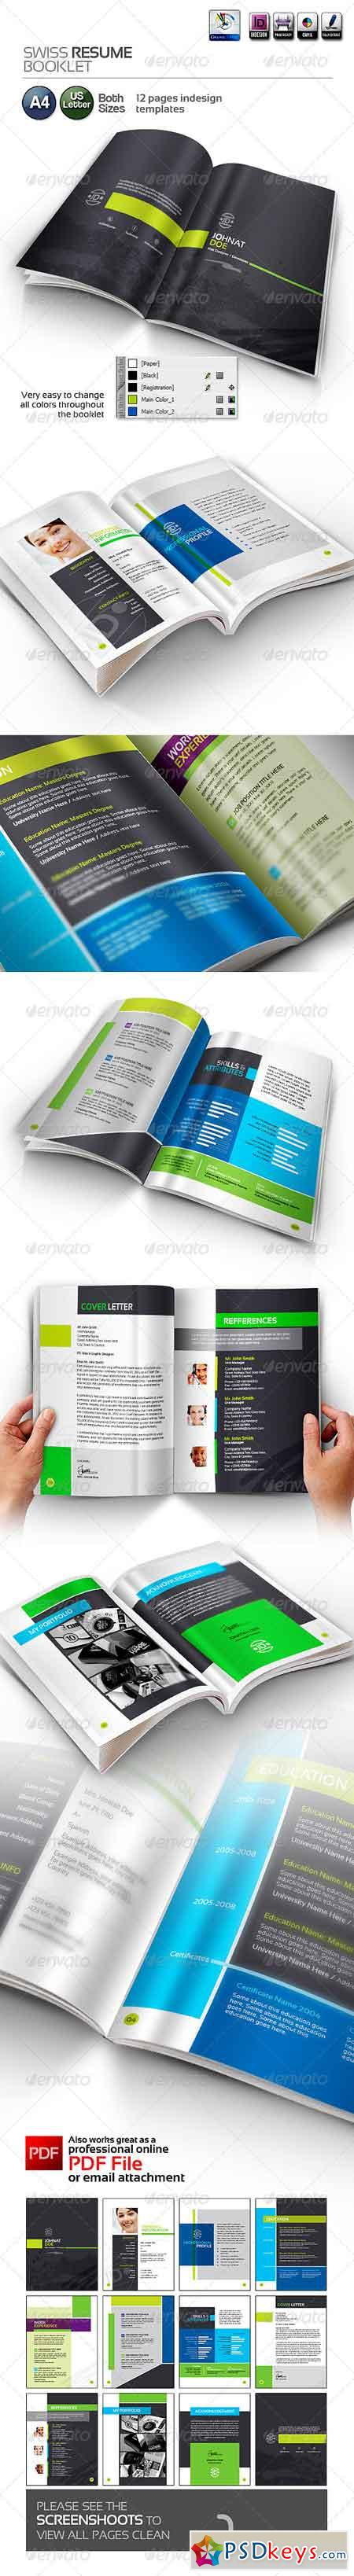 Swiss Resume Booklet 3764058